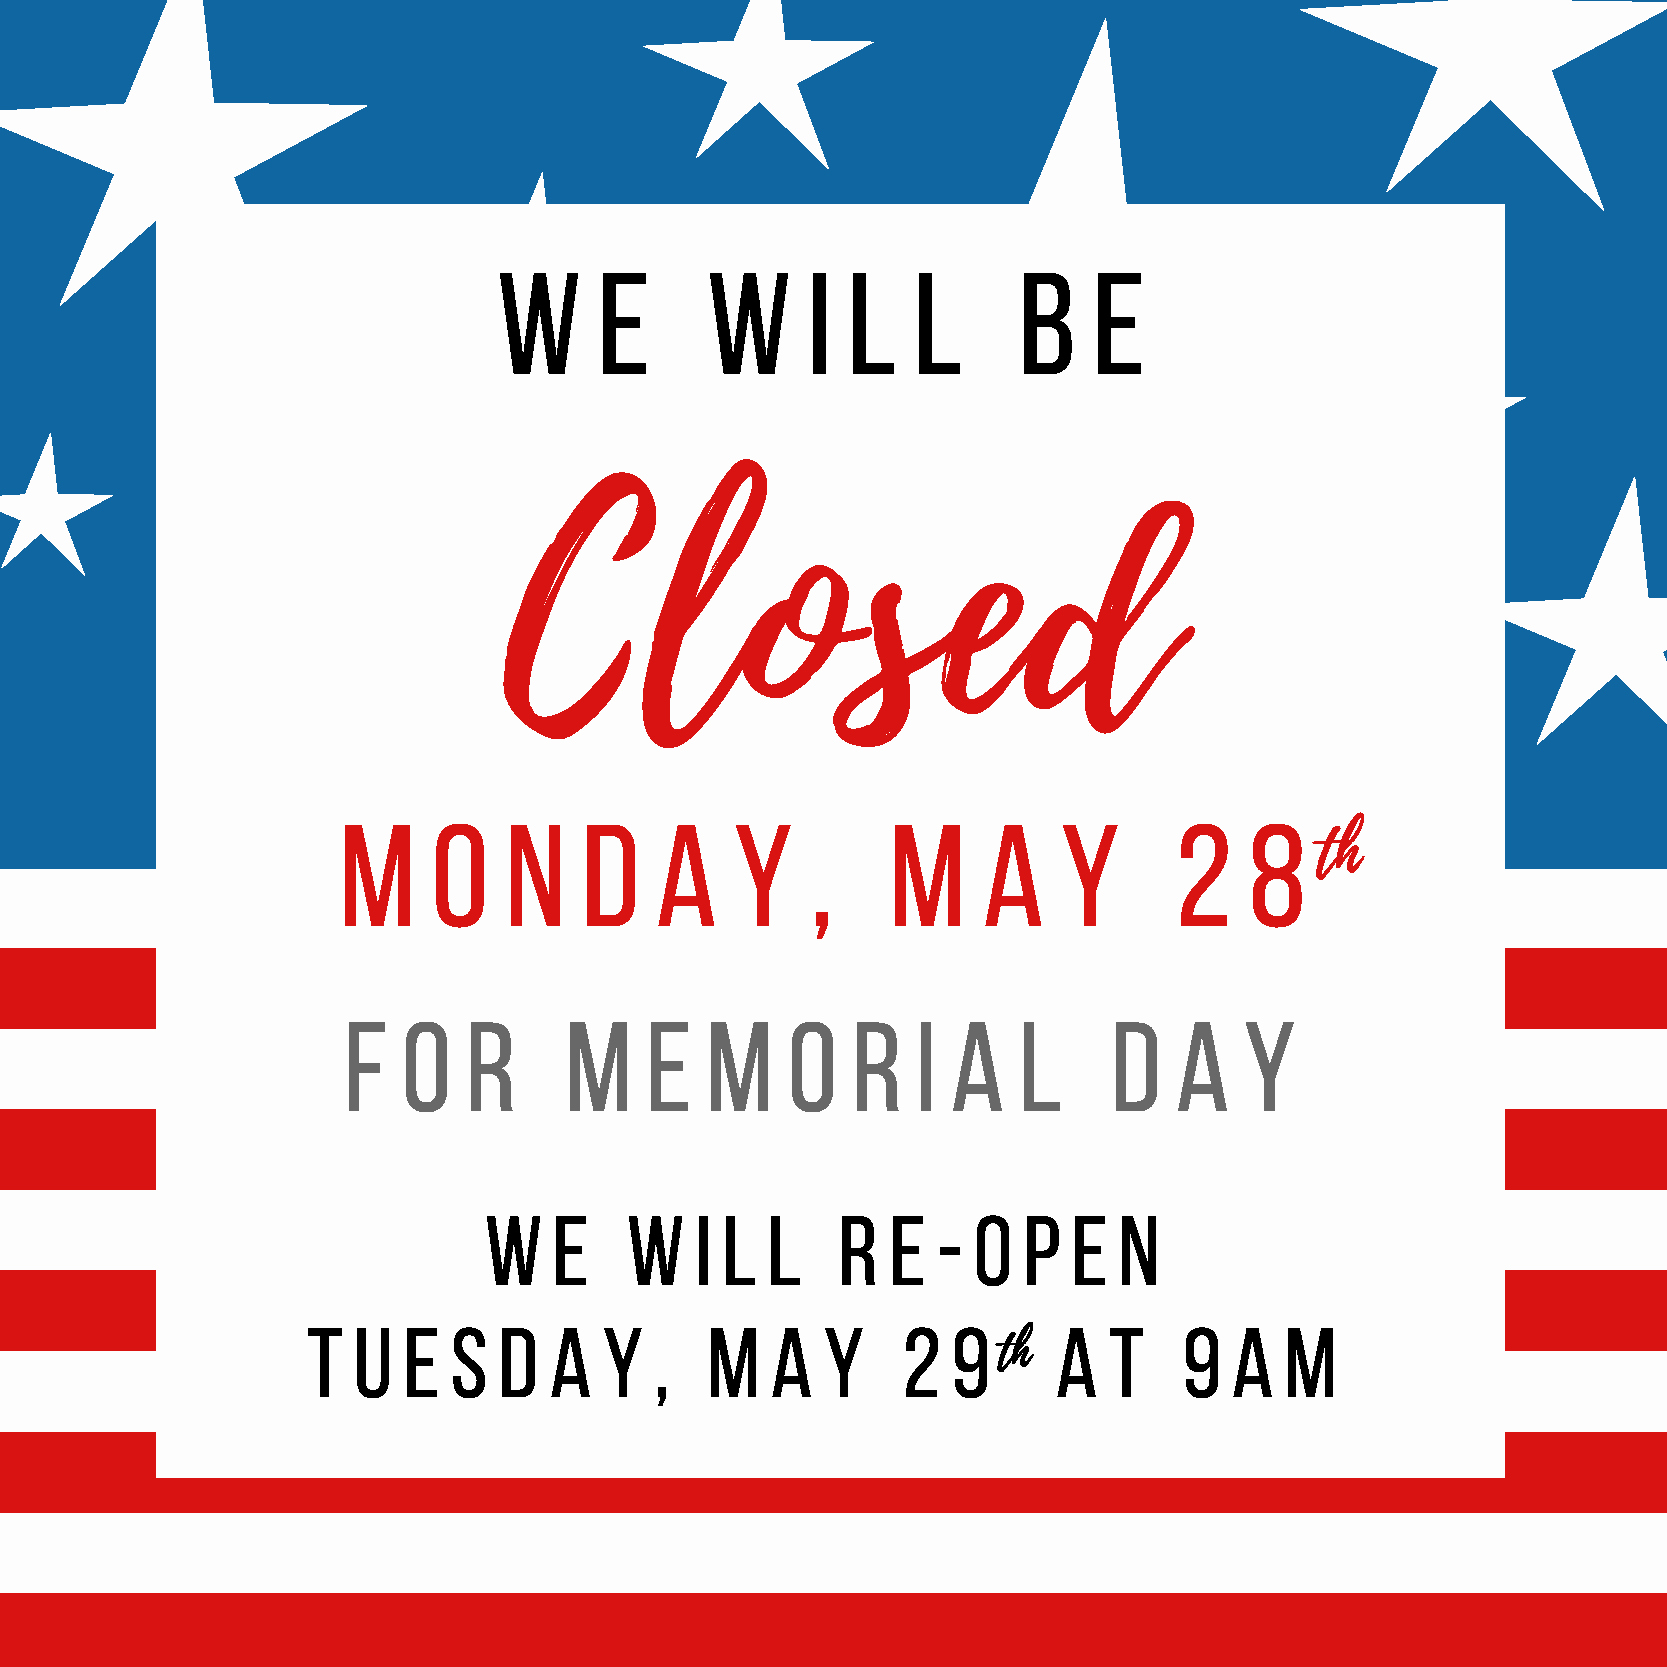 Office Closed Sign Template Luxury Memorial Day Closed San Gabriel Valley Habitat for Humanity